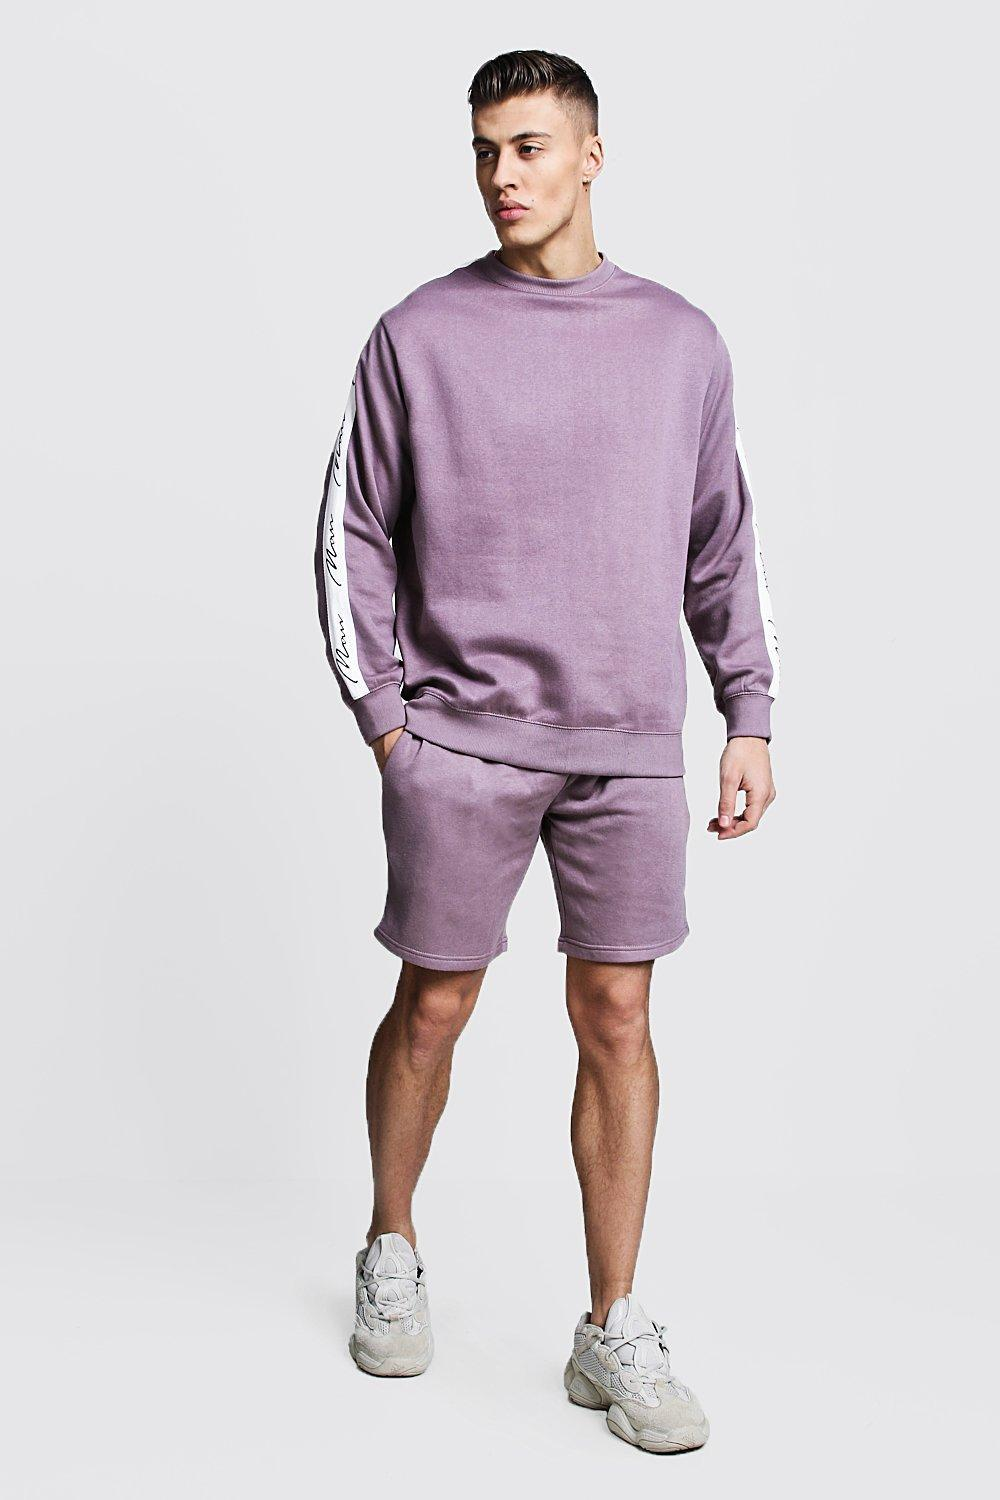 8e1c82a65c8d7 BoohooMAN Man Signature Tape Sweater Short Tracksuit in Purple for ...